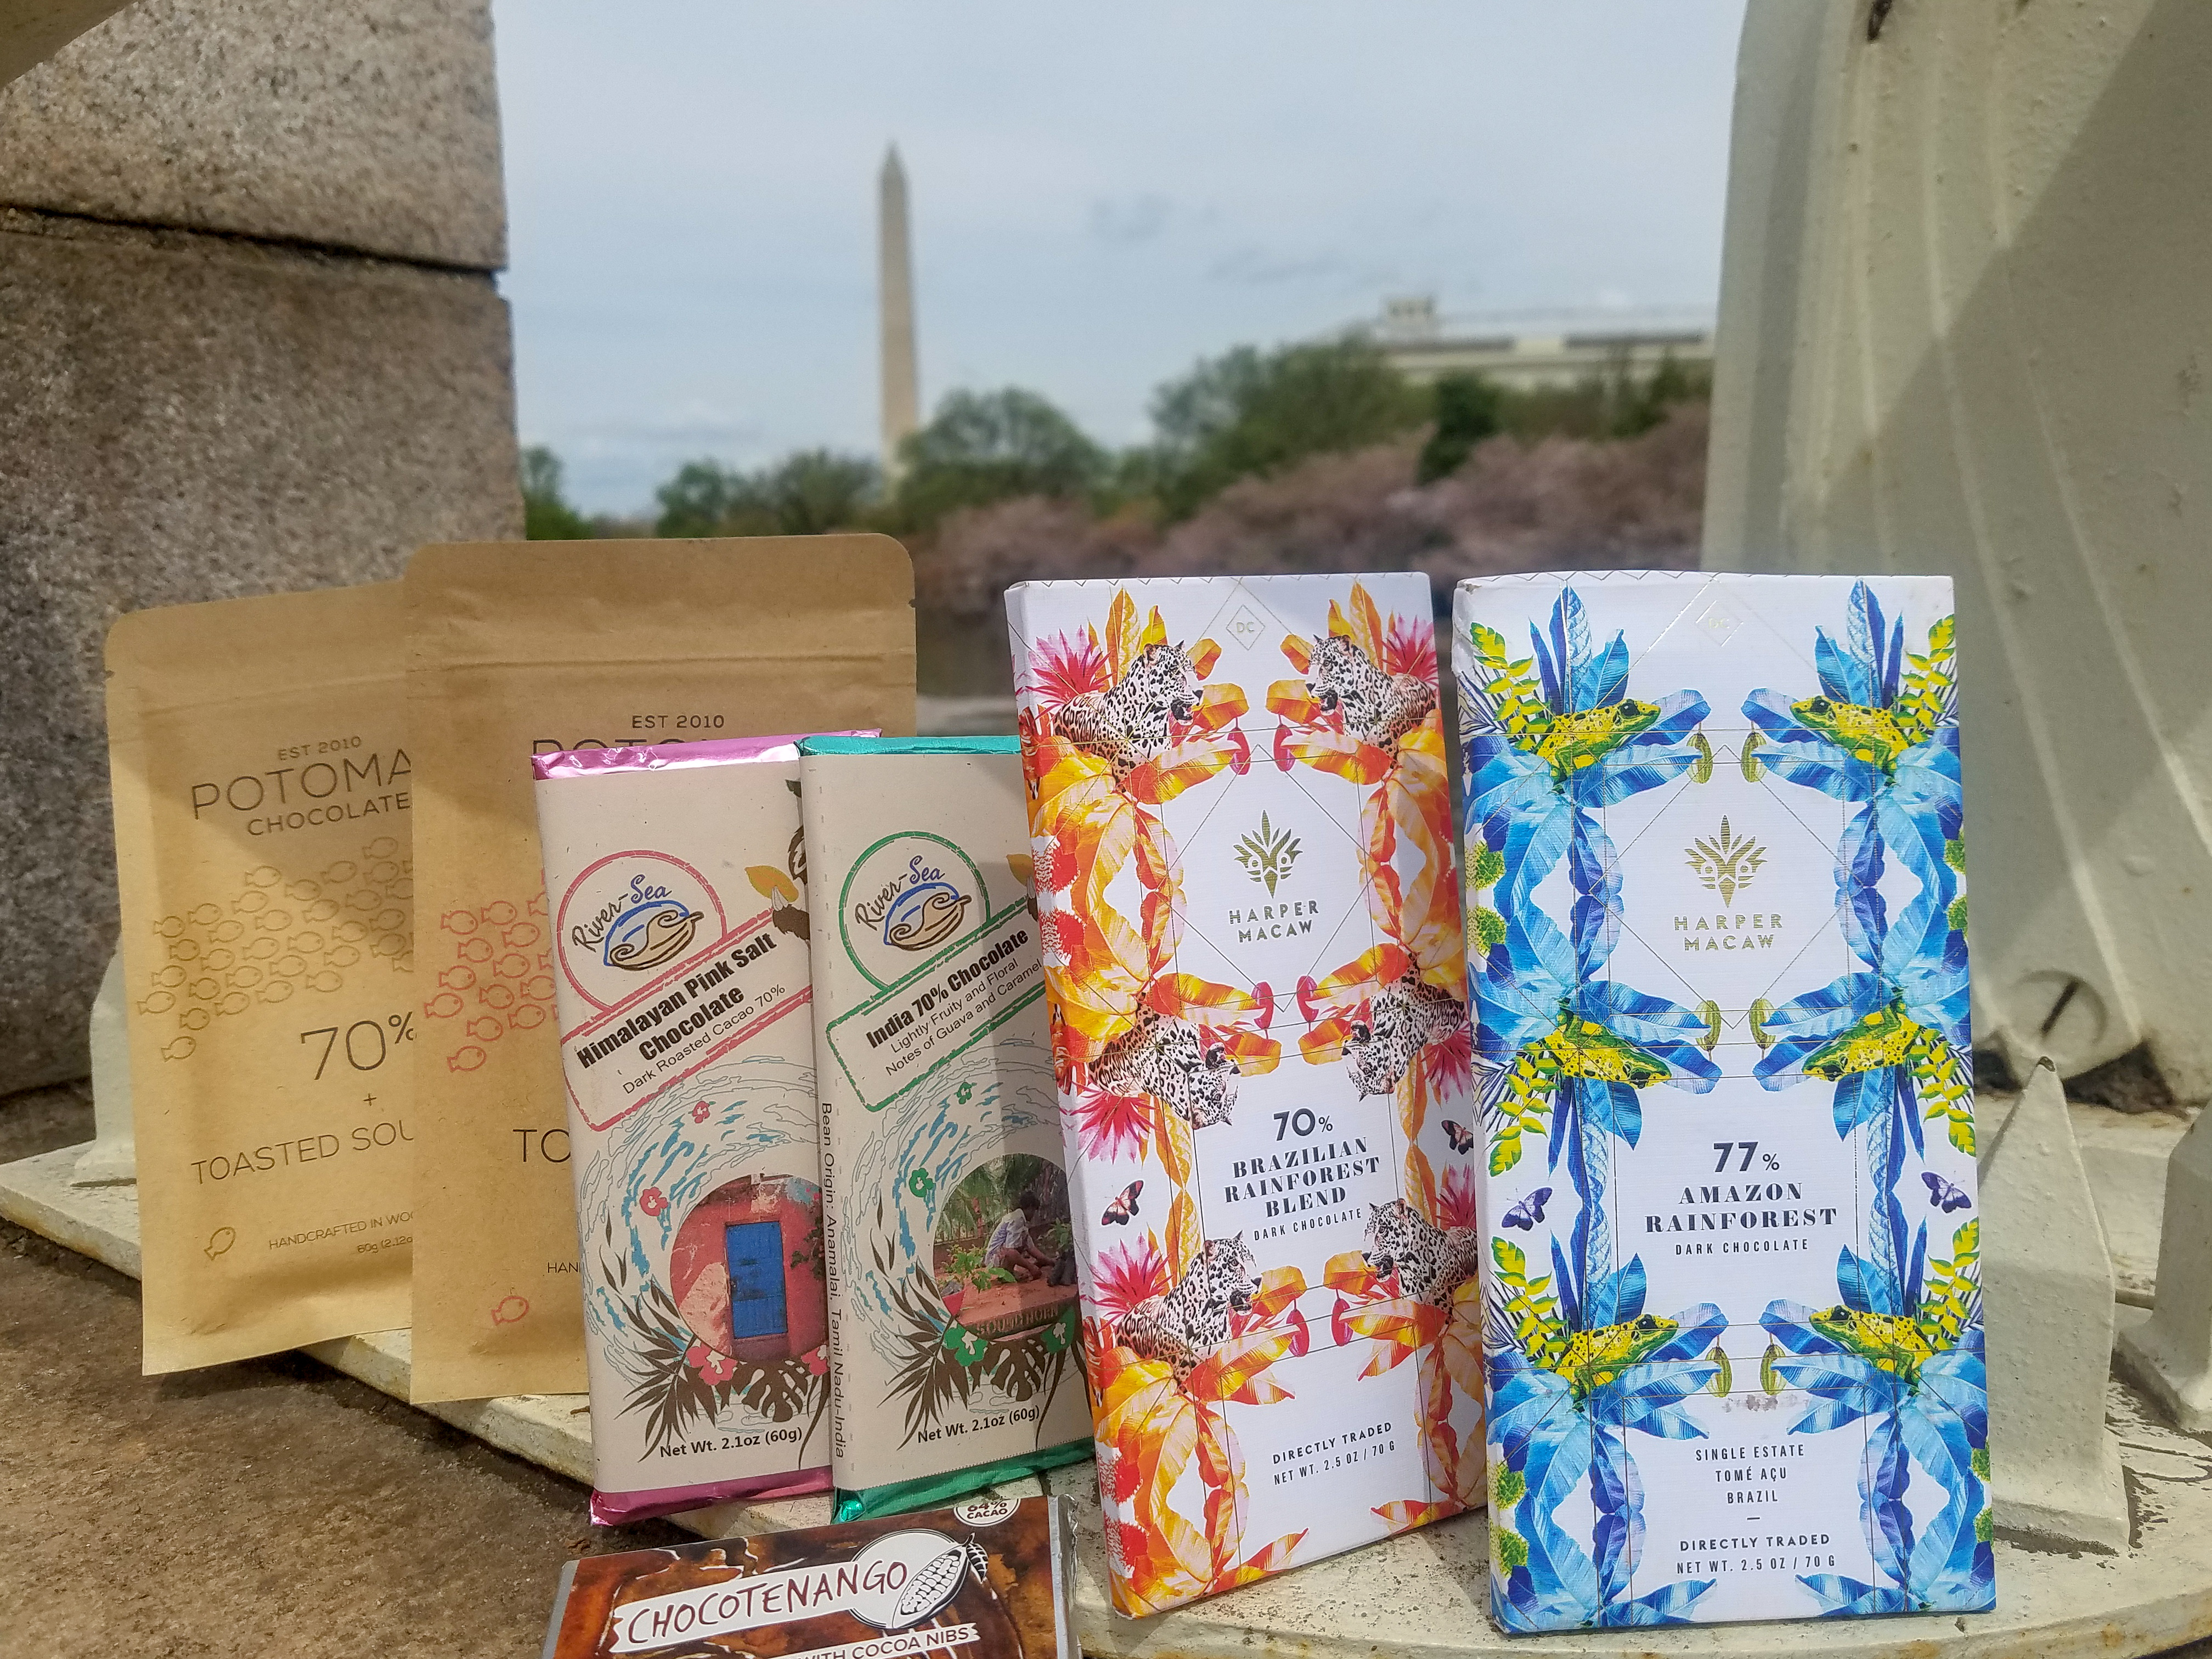 Where to Find Good* Chocolate in DC